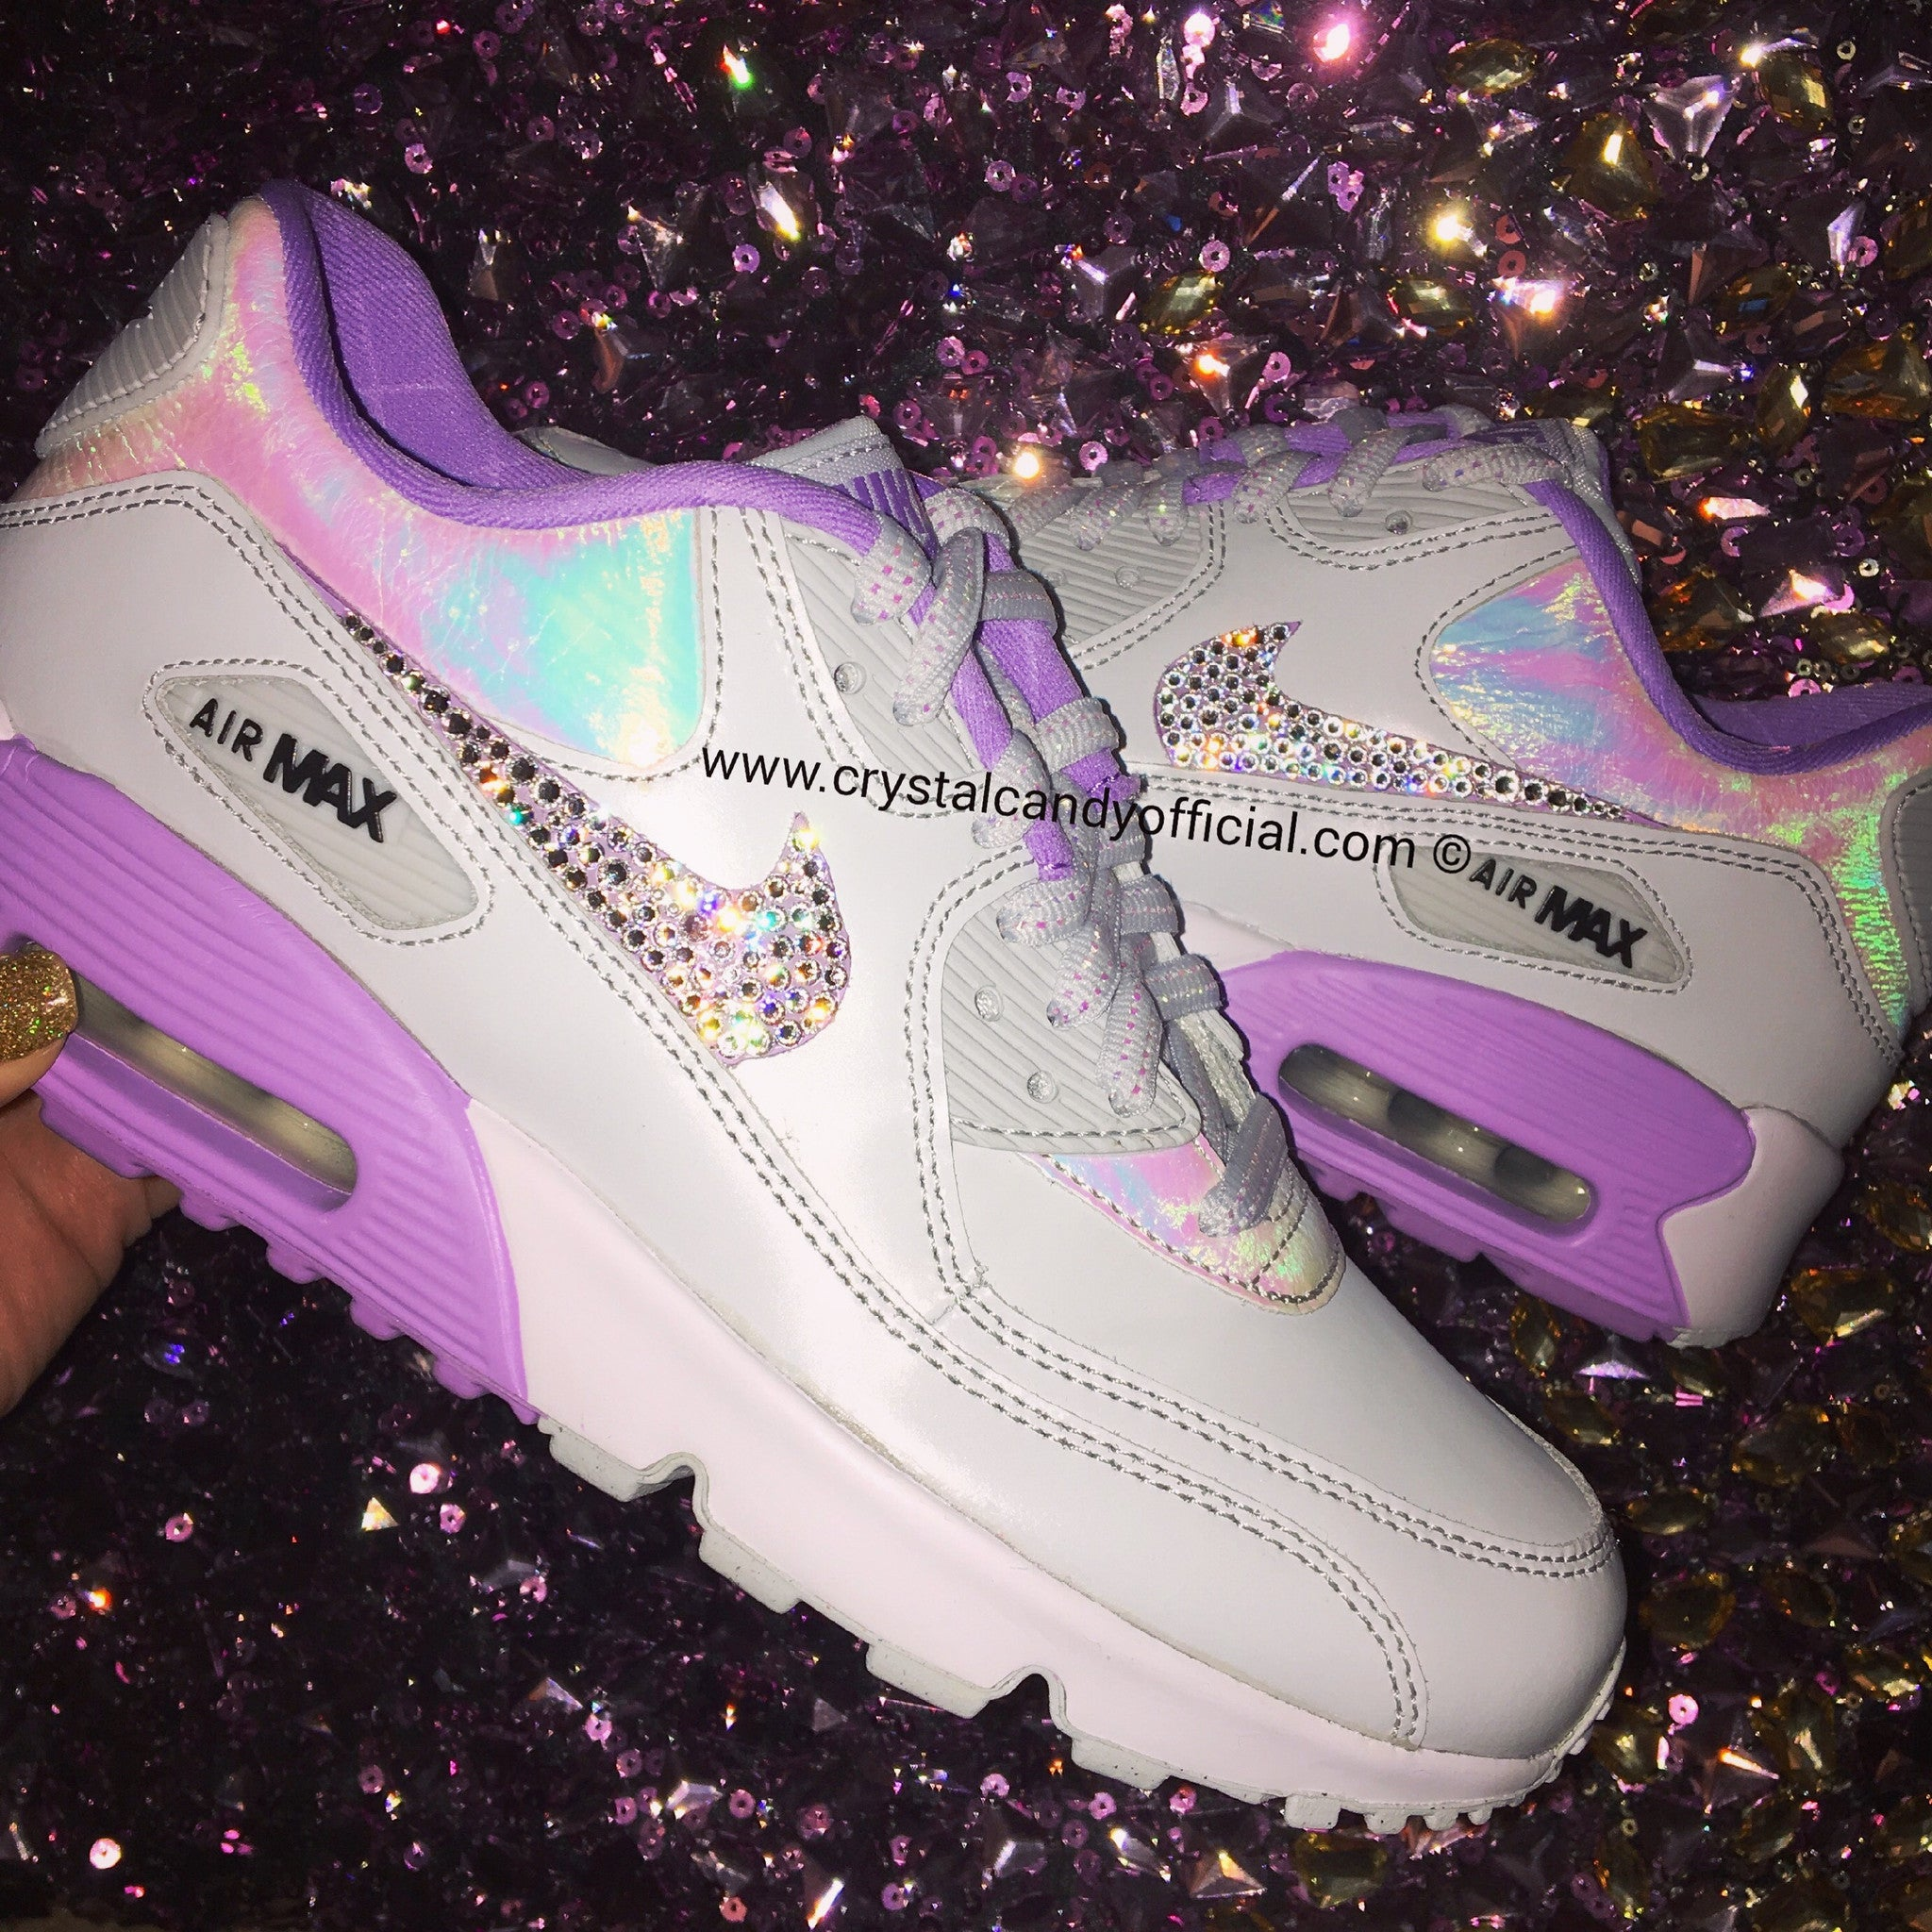 5bef0f4ebc0 Crystal Nike Air Max 90 s in Unicorn Holographic - Crystal Candy Limited